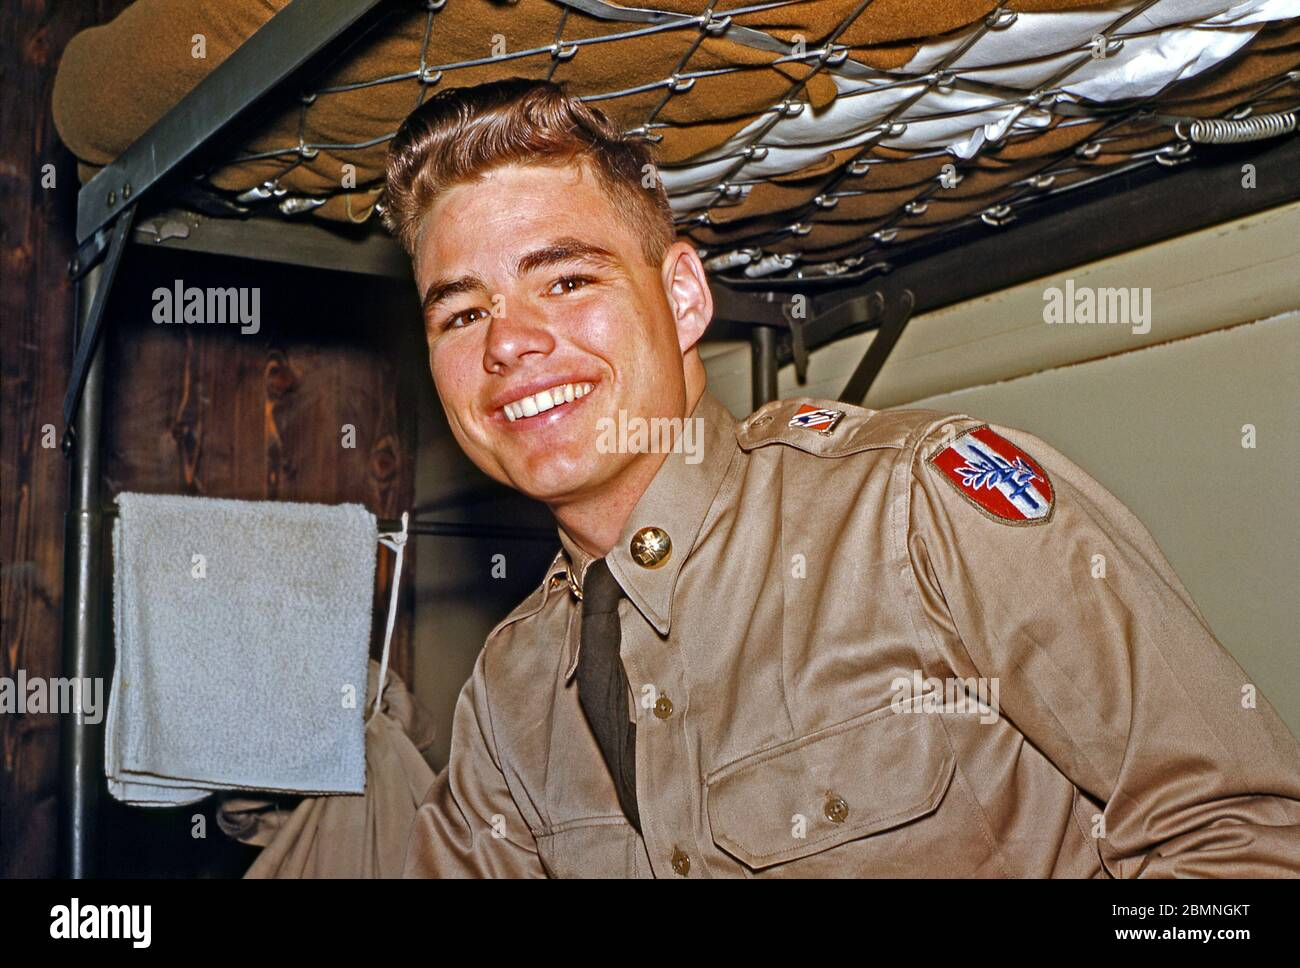 A US Army soldier stationed in Germany in the mid-1950s – a member of the 160th Signal Group is pictured on a bunk bed at the Panzer Kaserne (PK) headquarters, in Böblingen. In uniform, his hair has a quiff, a style popular in that era. From 1955 the 160th Signal Group provided communications throughout Germany under the US 7th (Seventh) Army during the Post-war era from an HQ at Panzer Kaserne (PK), in Böblingen (Boeblingen) near Stuttgart. The US 7th Army's HQ was at nearby Patch Barracks. Stock Photo